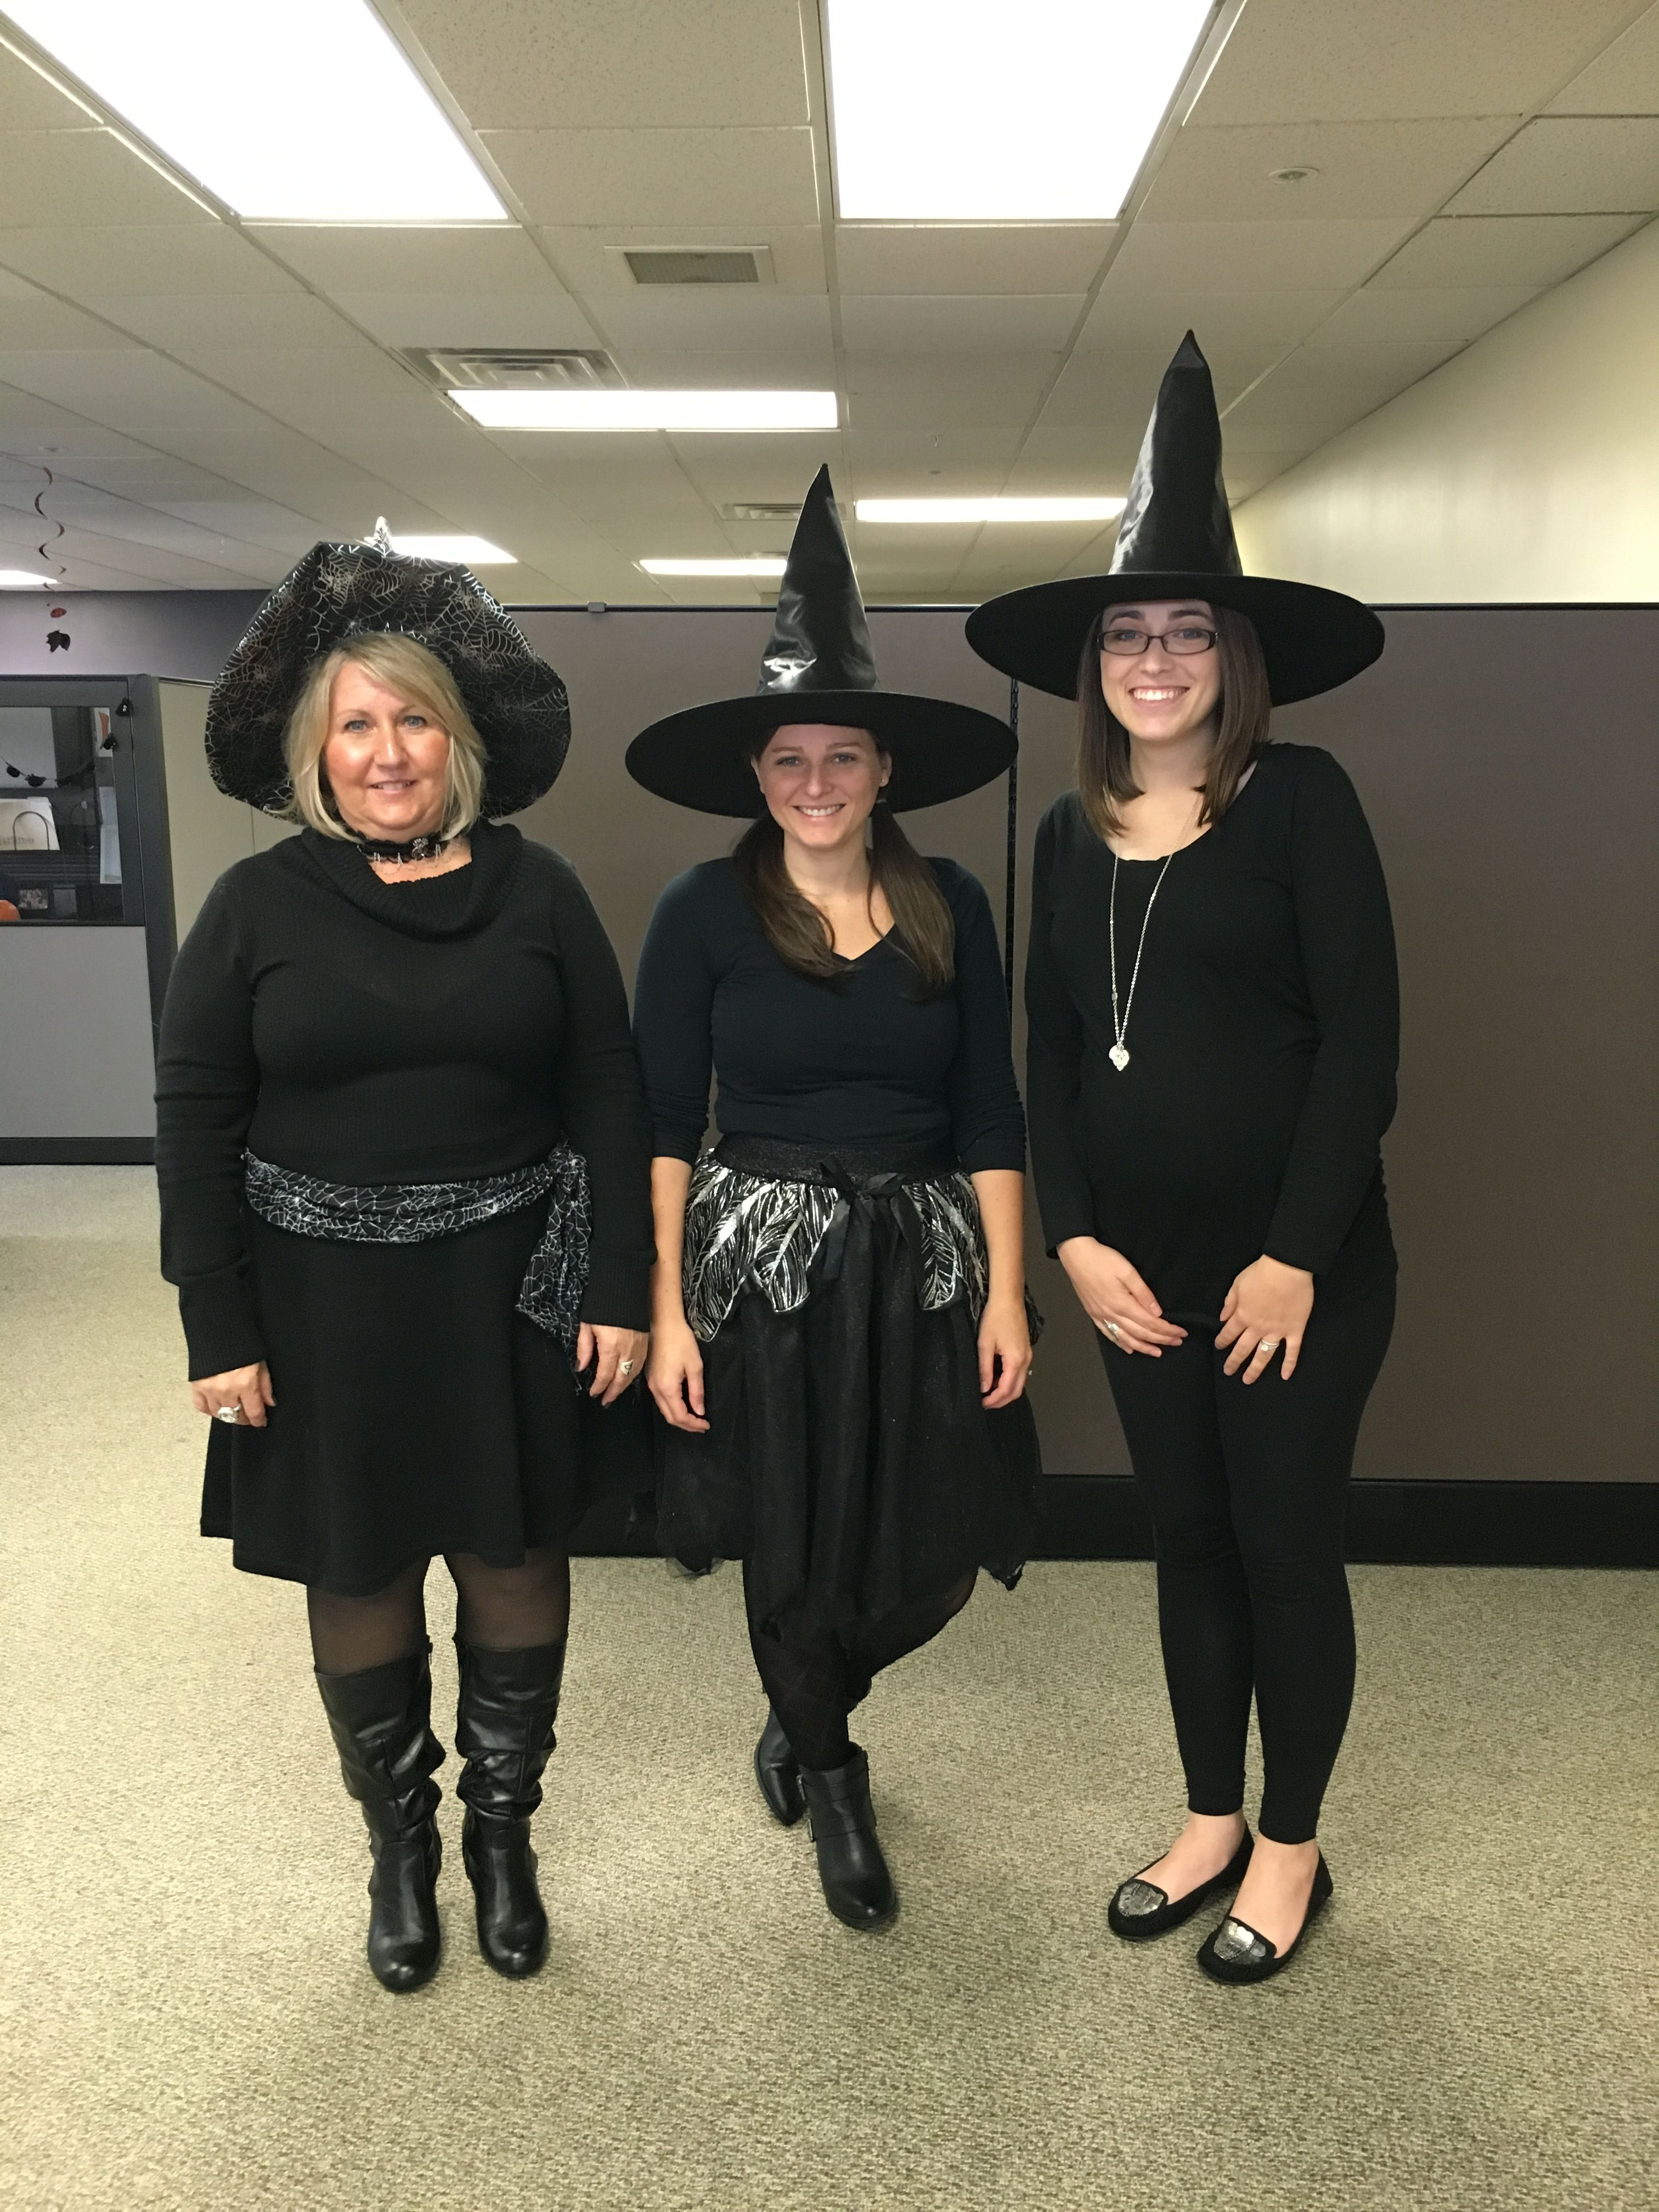 Creative Halloween Costume For The Office - Witch